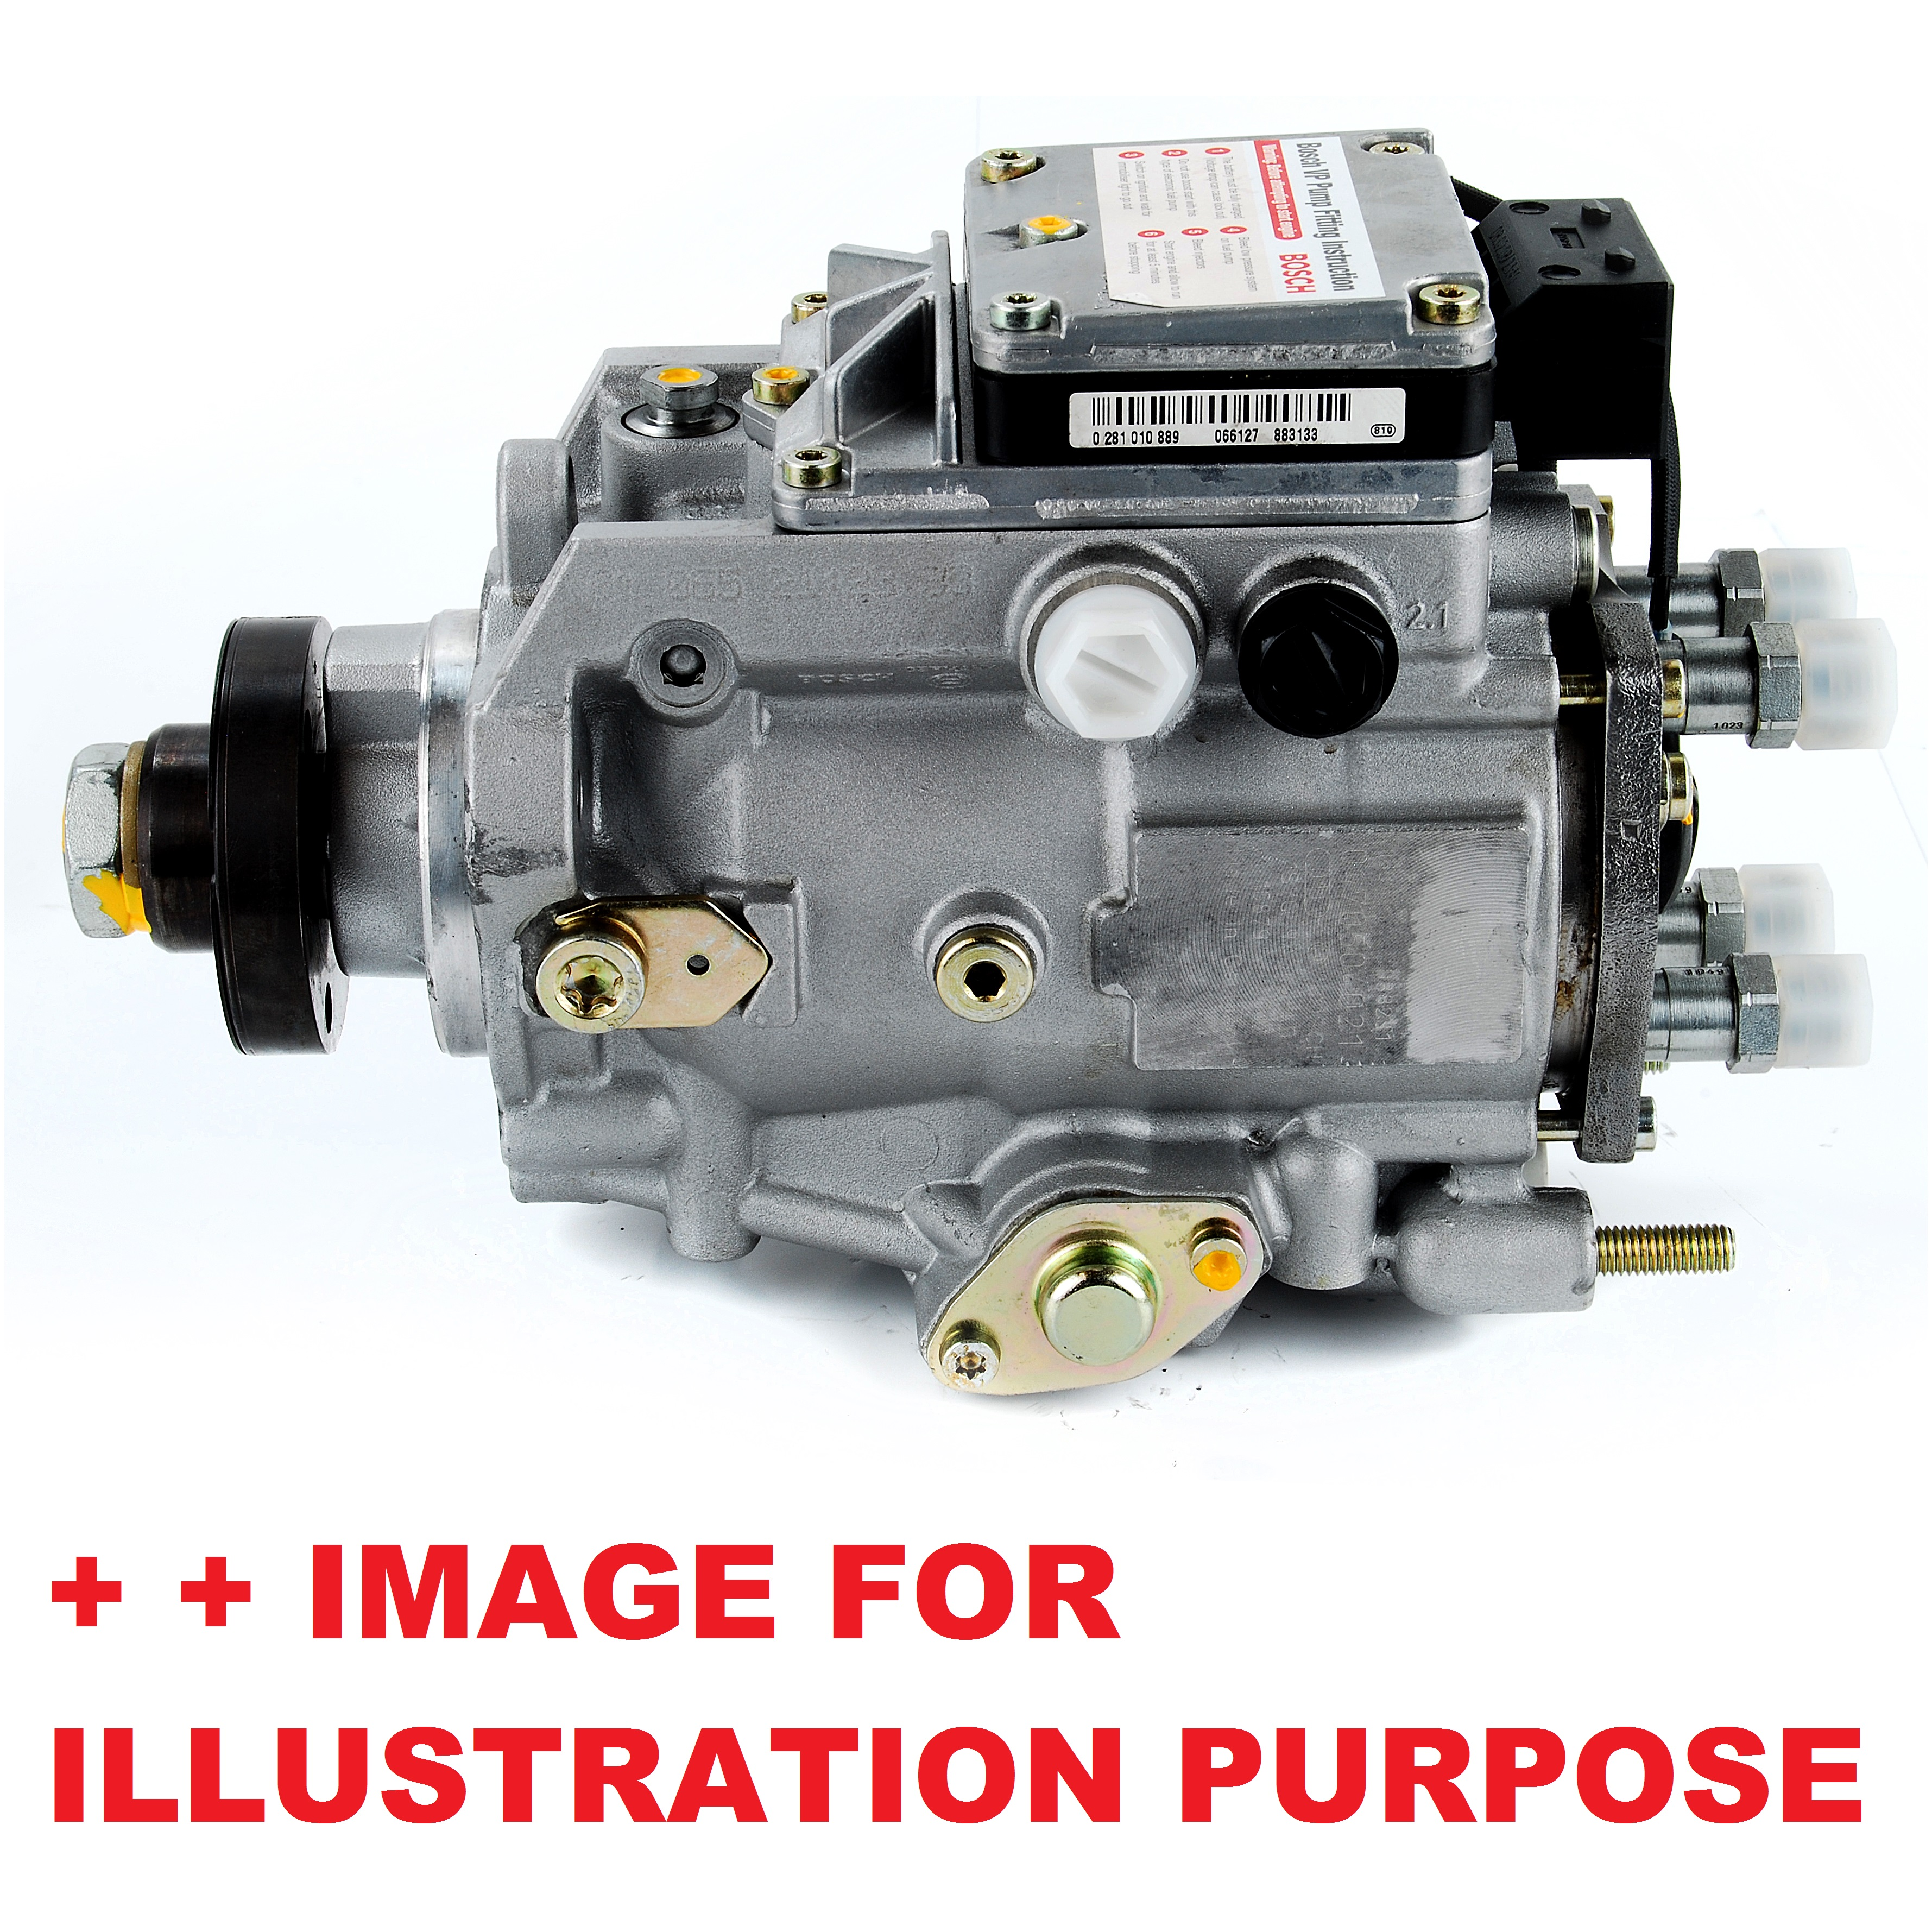 diesel fuel injection pump common rail high pressure replacement bosch 928400366 ebay. Black Bedroom Furniture Sets. Home Design Ideas